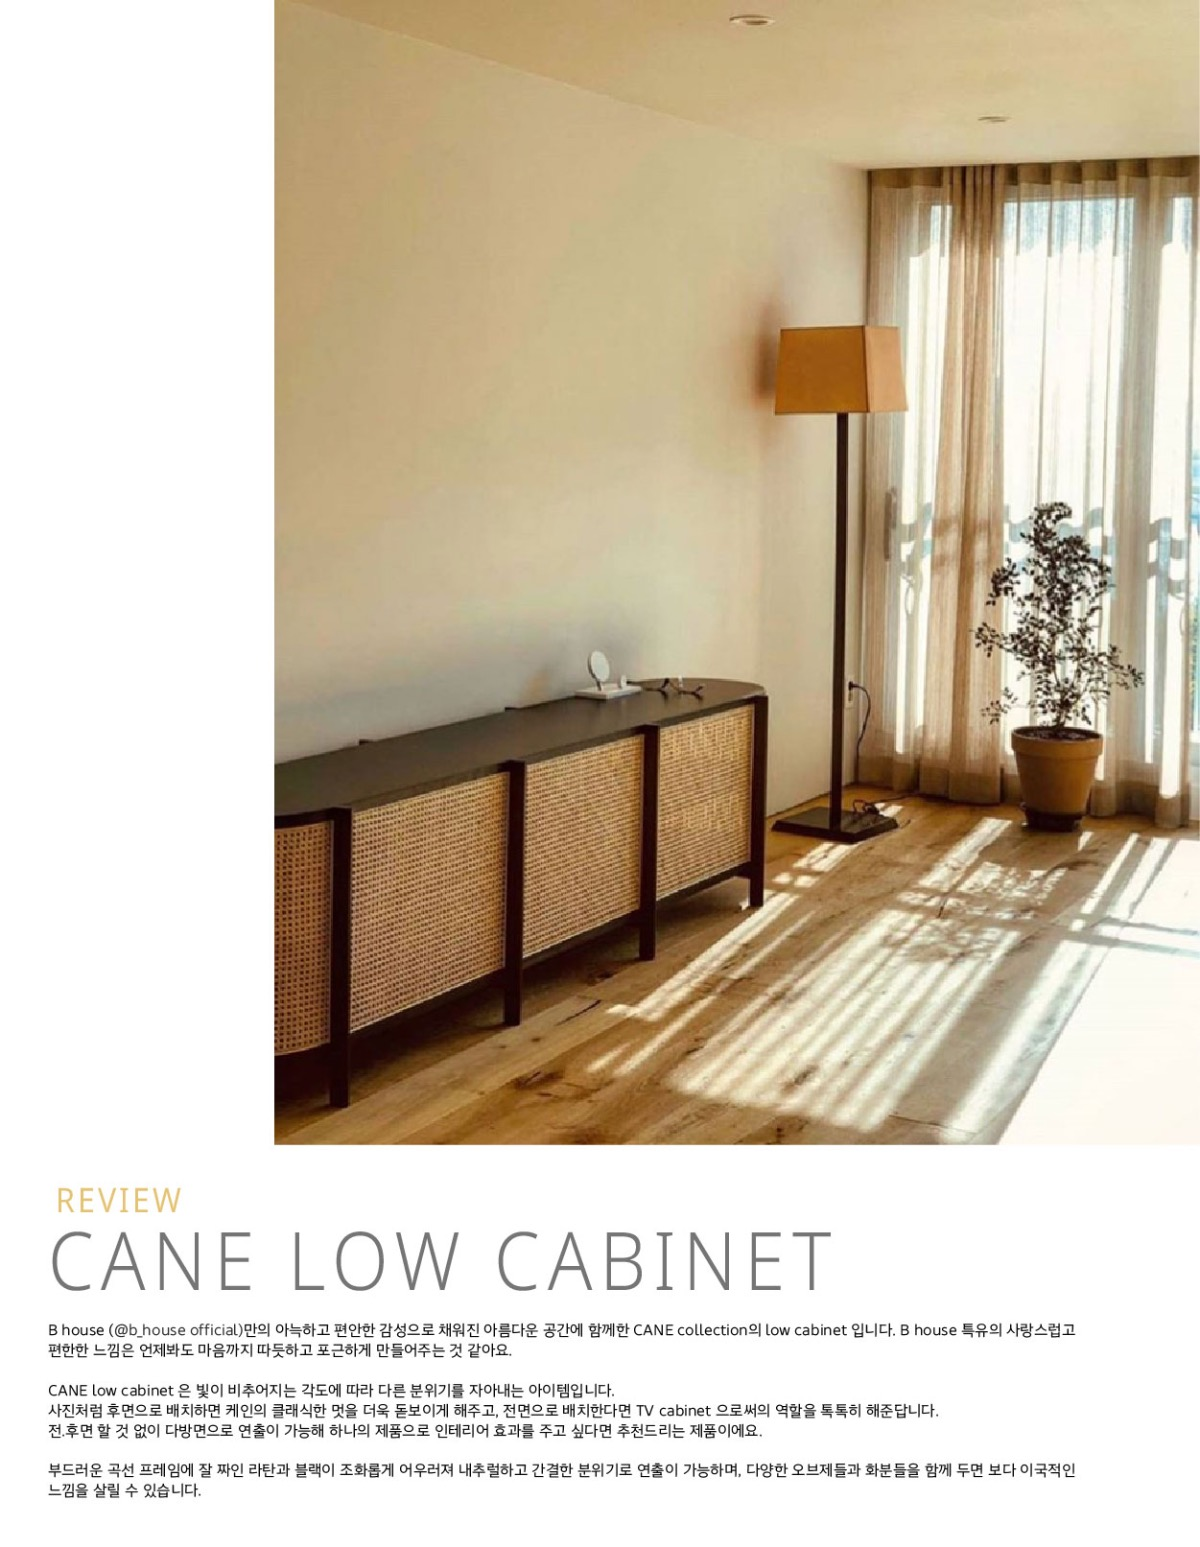 CANE low cabinet, black